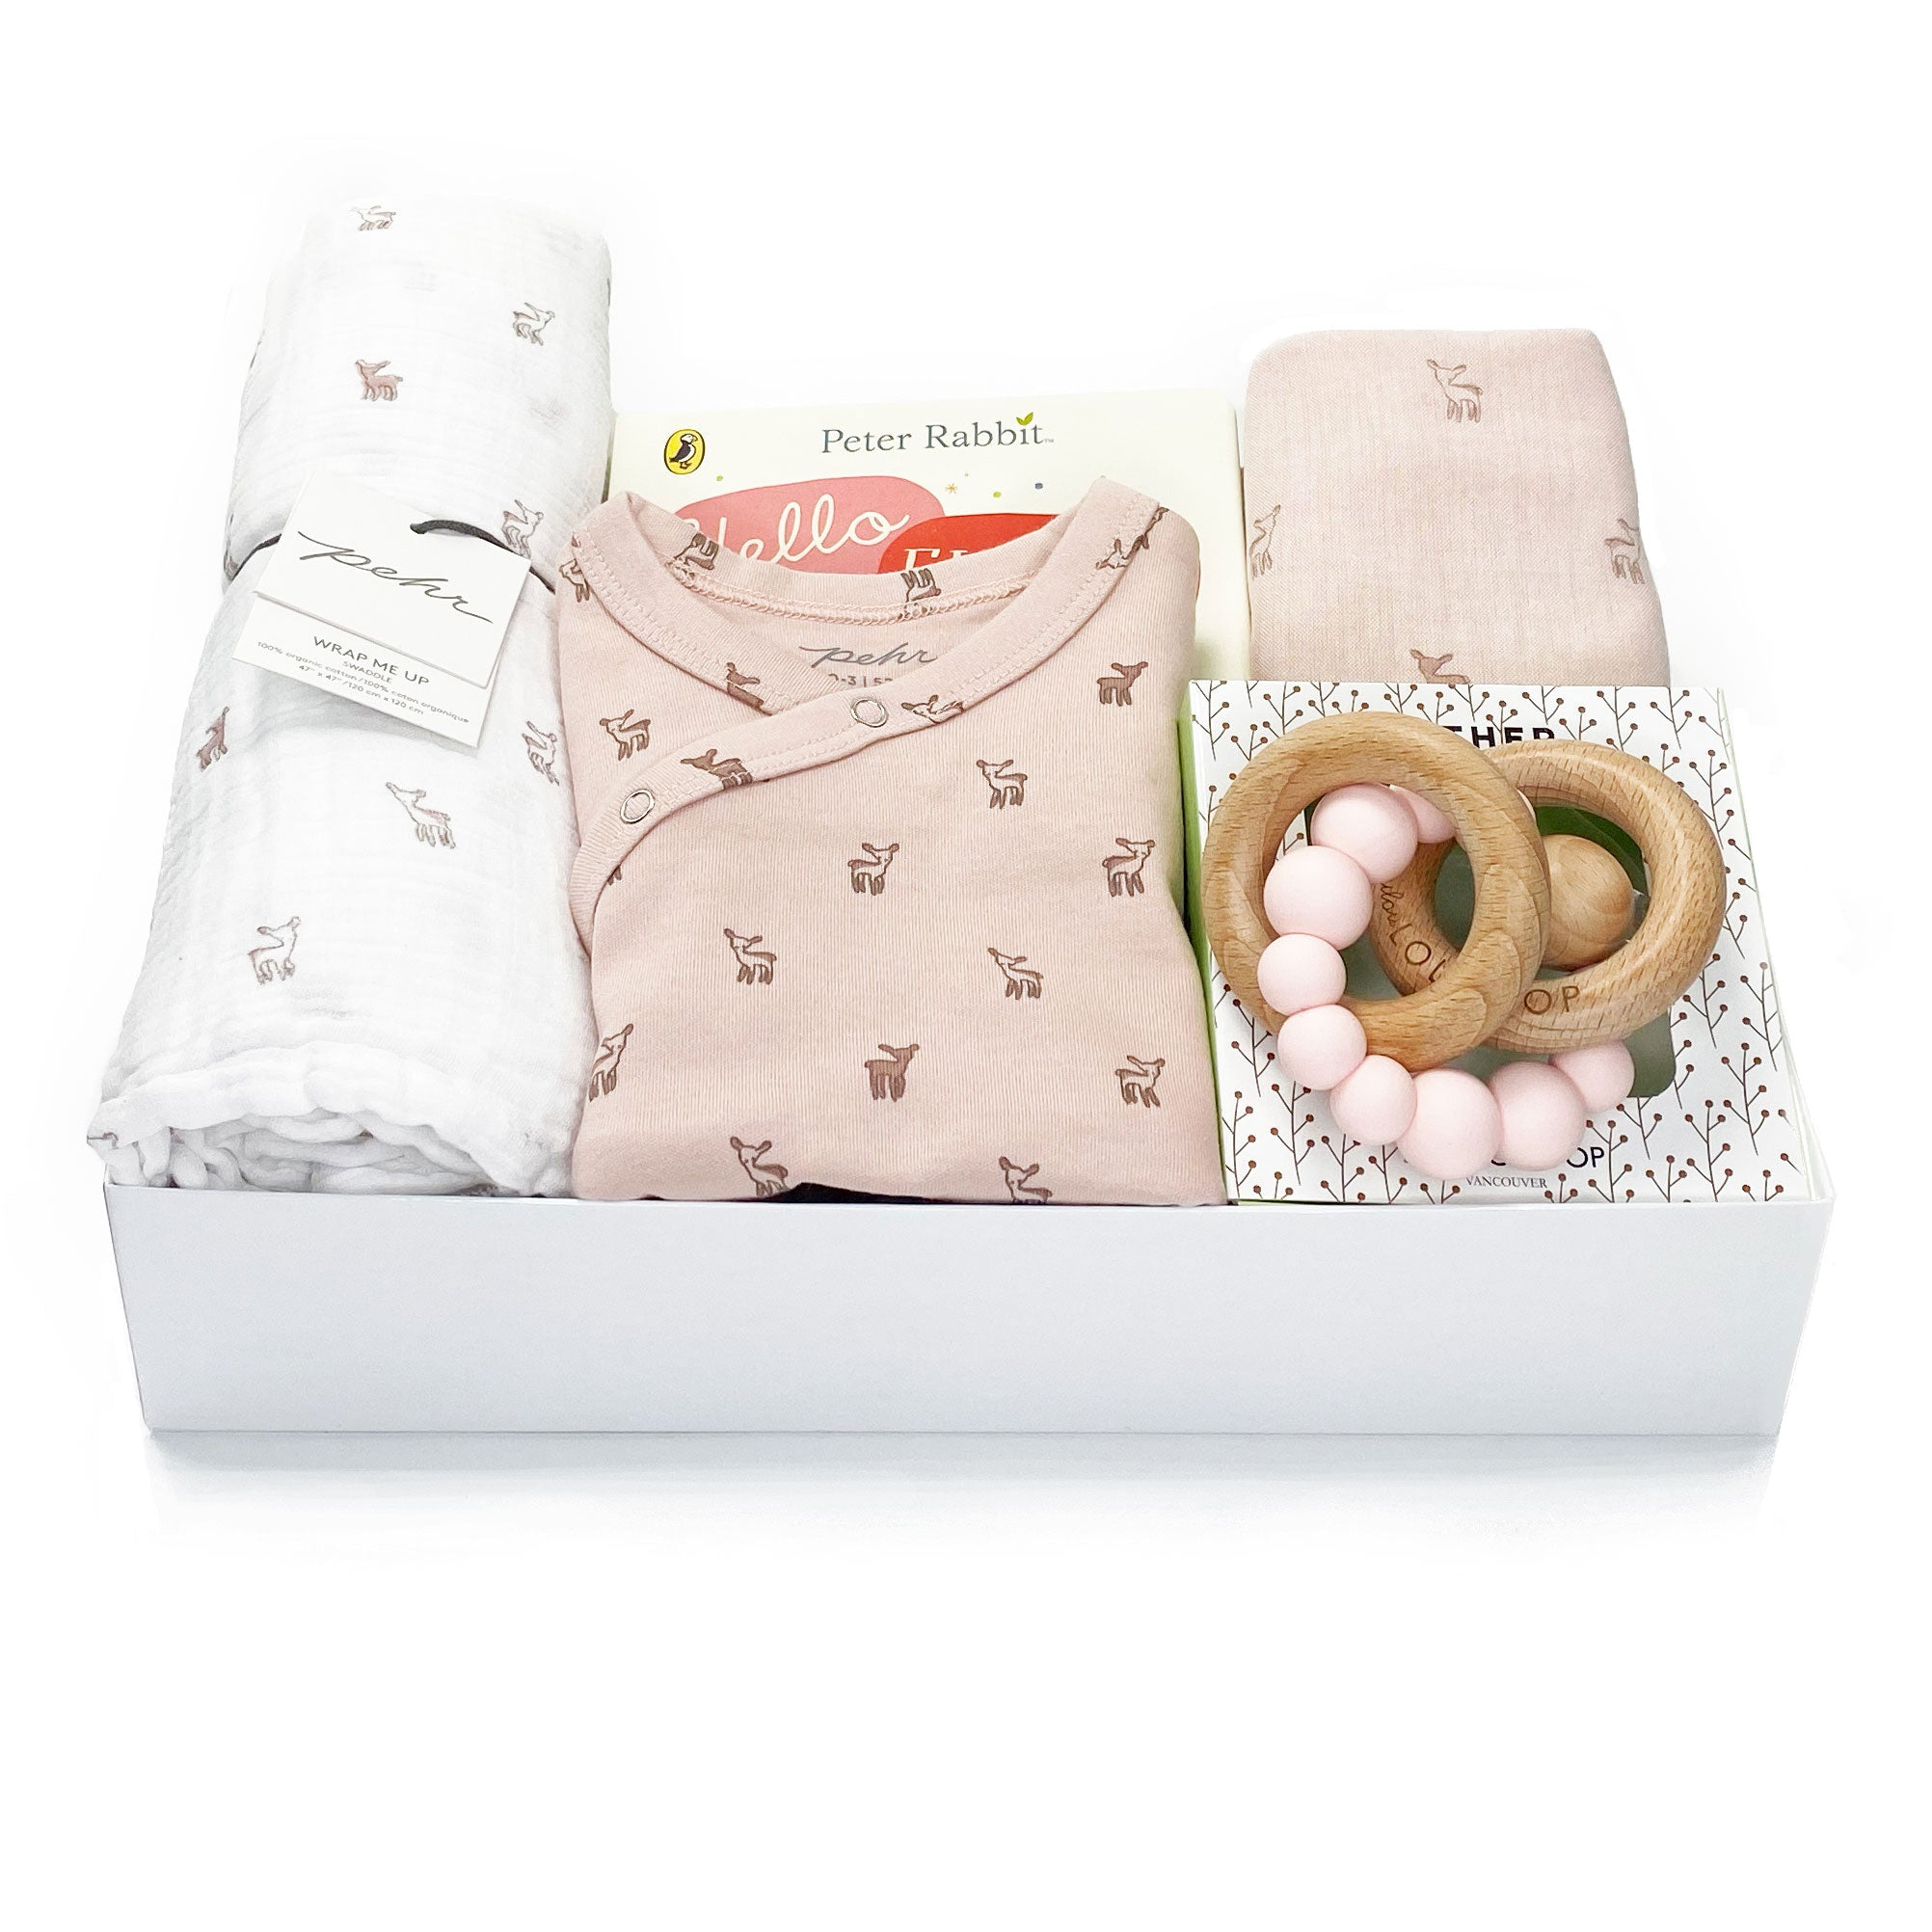 Hatchlings Baby Gift Box at Bonjour Baby Baskets - Luxury Baby Gifts